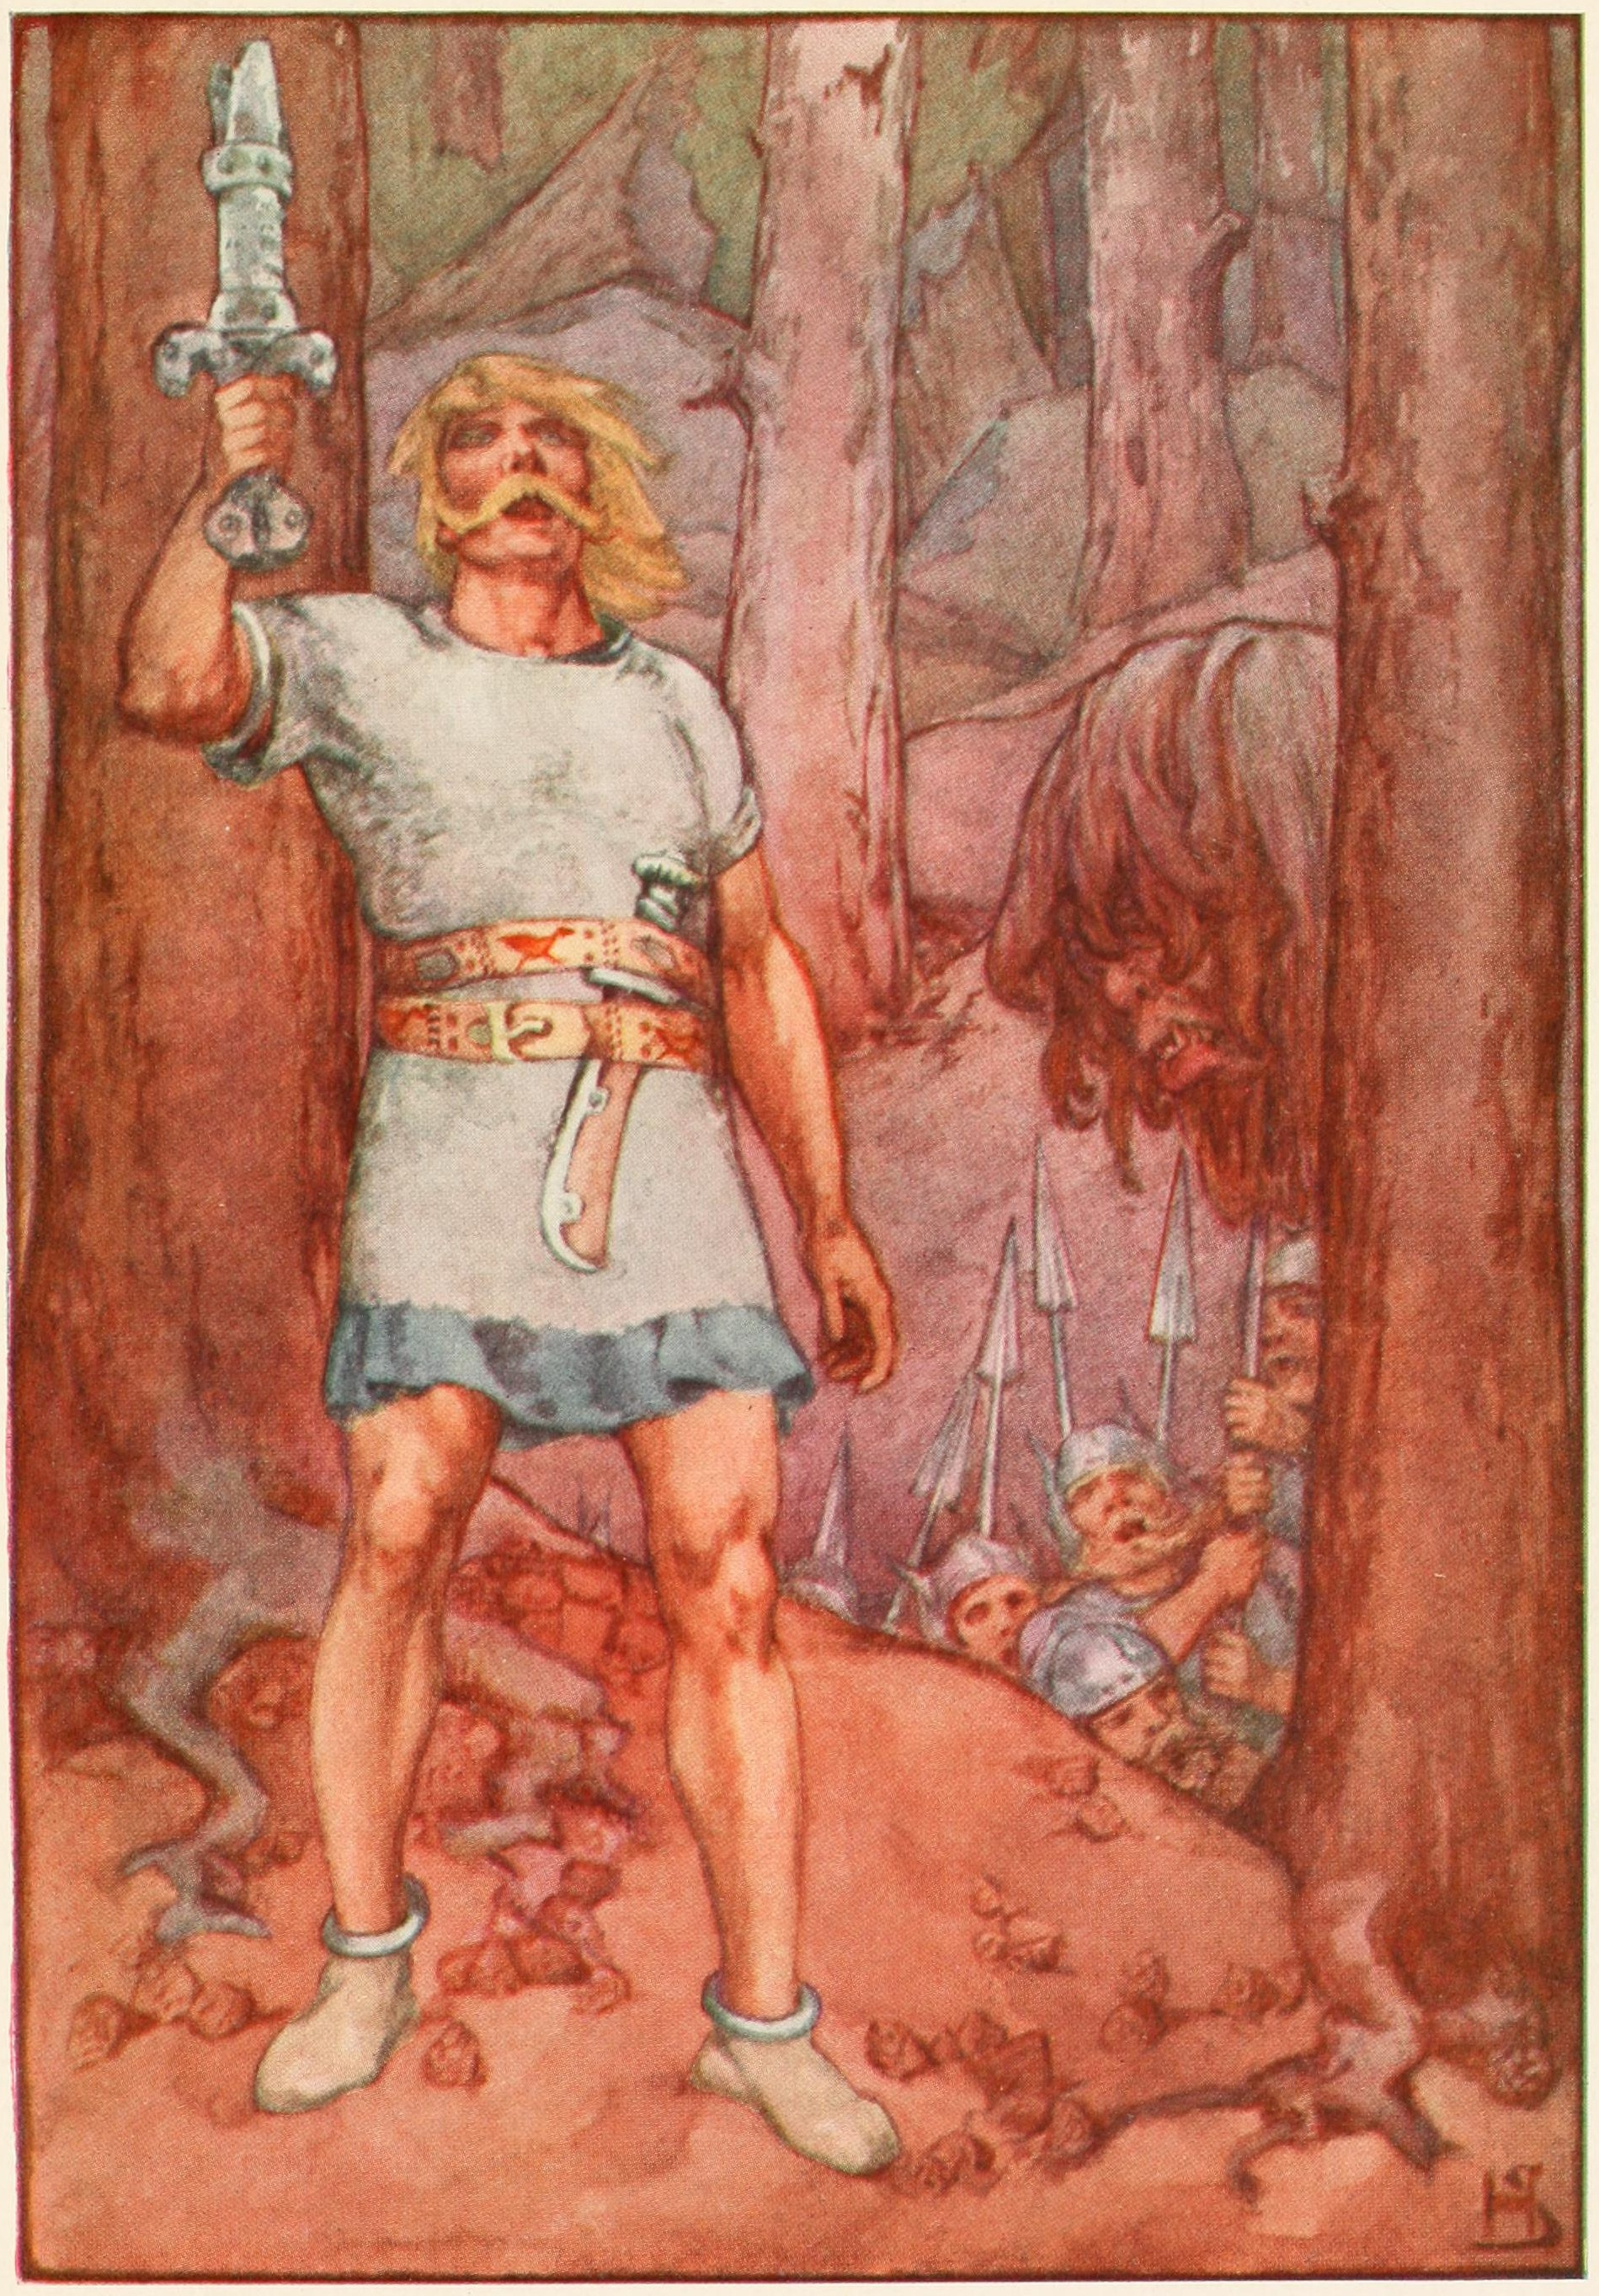 beowulf the hero In the epic poem beowulf, the protagonist beowulf is shown as a hero with extrodinary strength this is not what makes him a hero by definition, a hero is a man of exceptional quality.